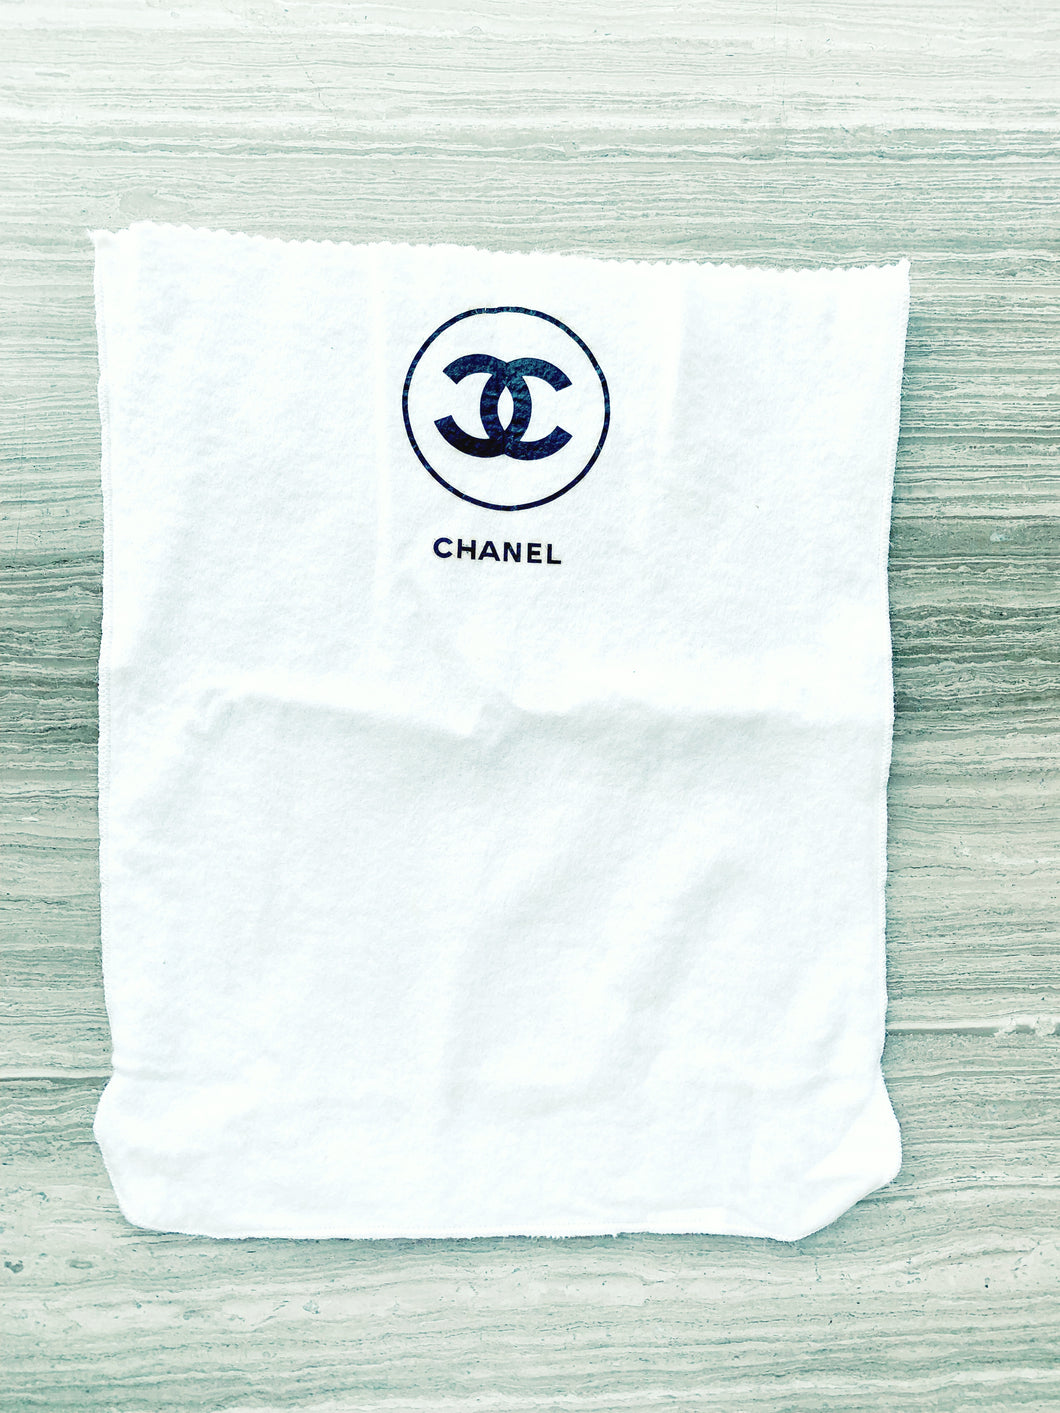 Vintage Chanel Dustbag - My Grandfather's Things